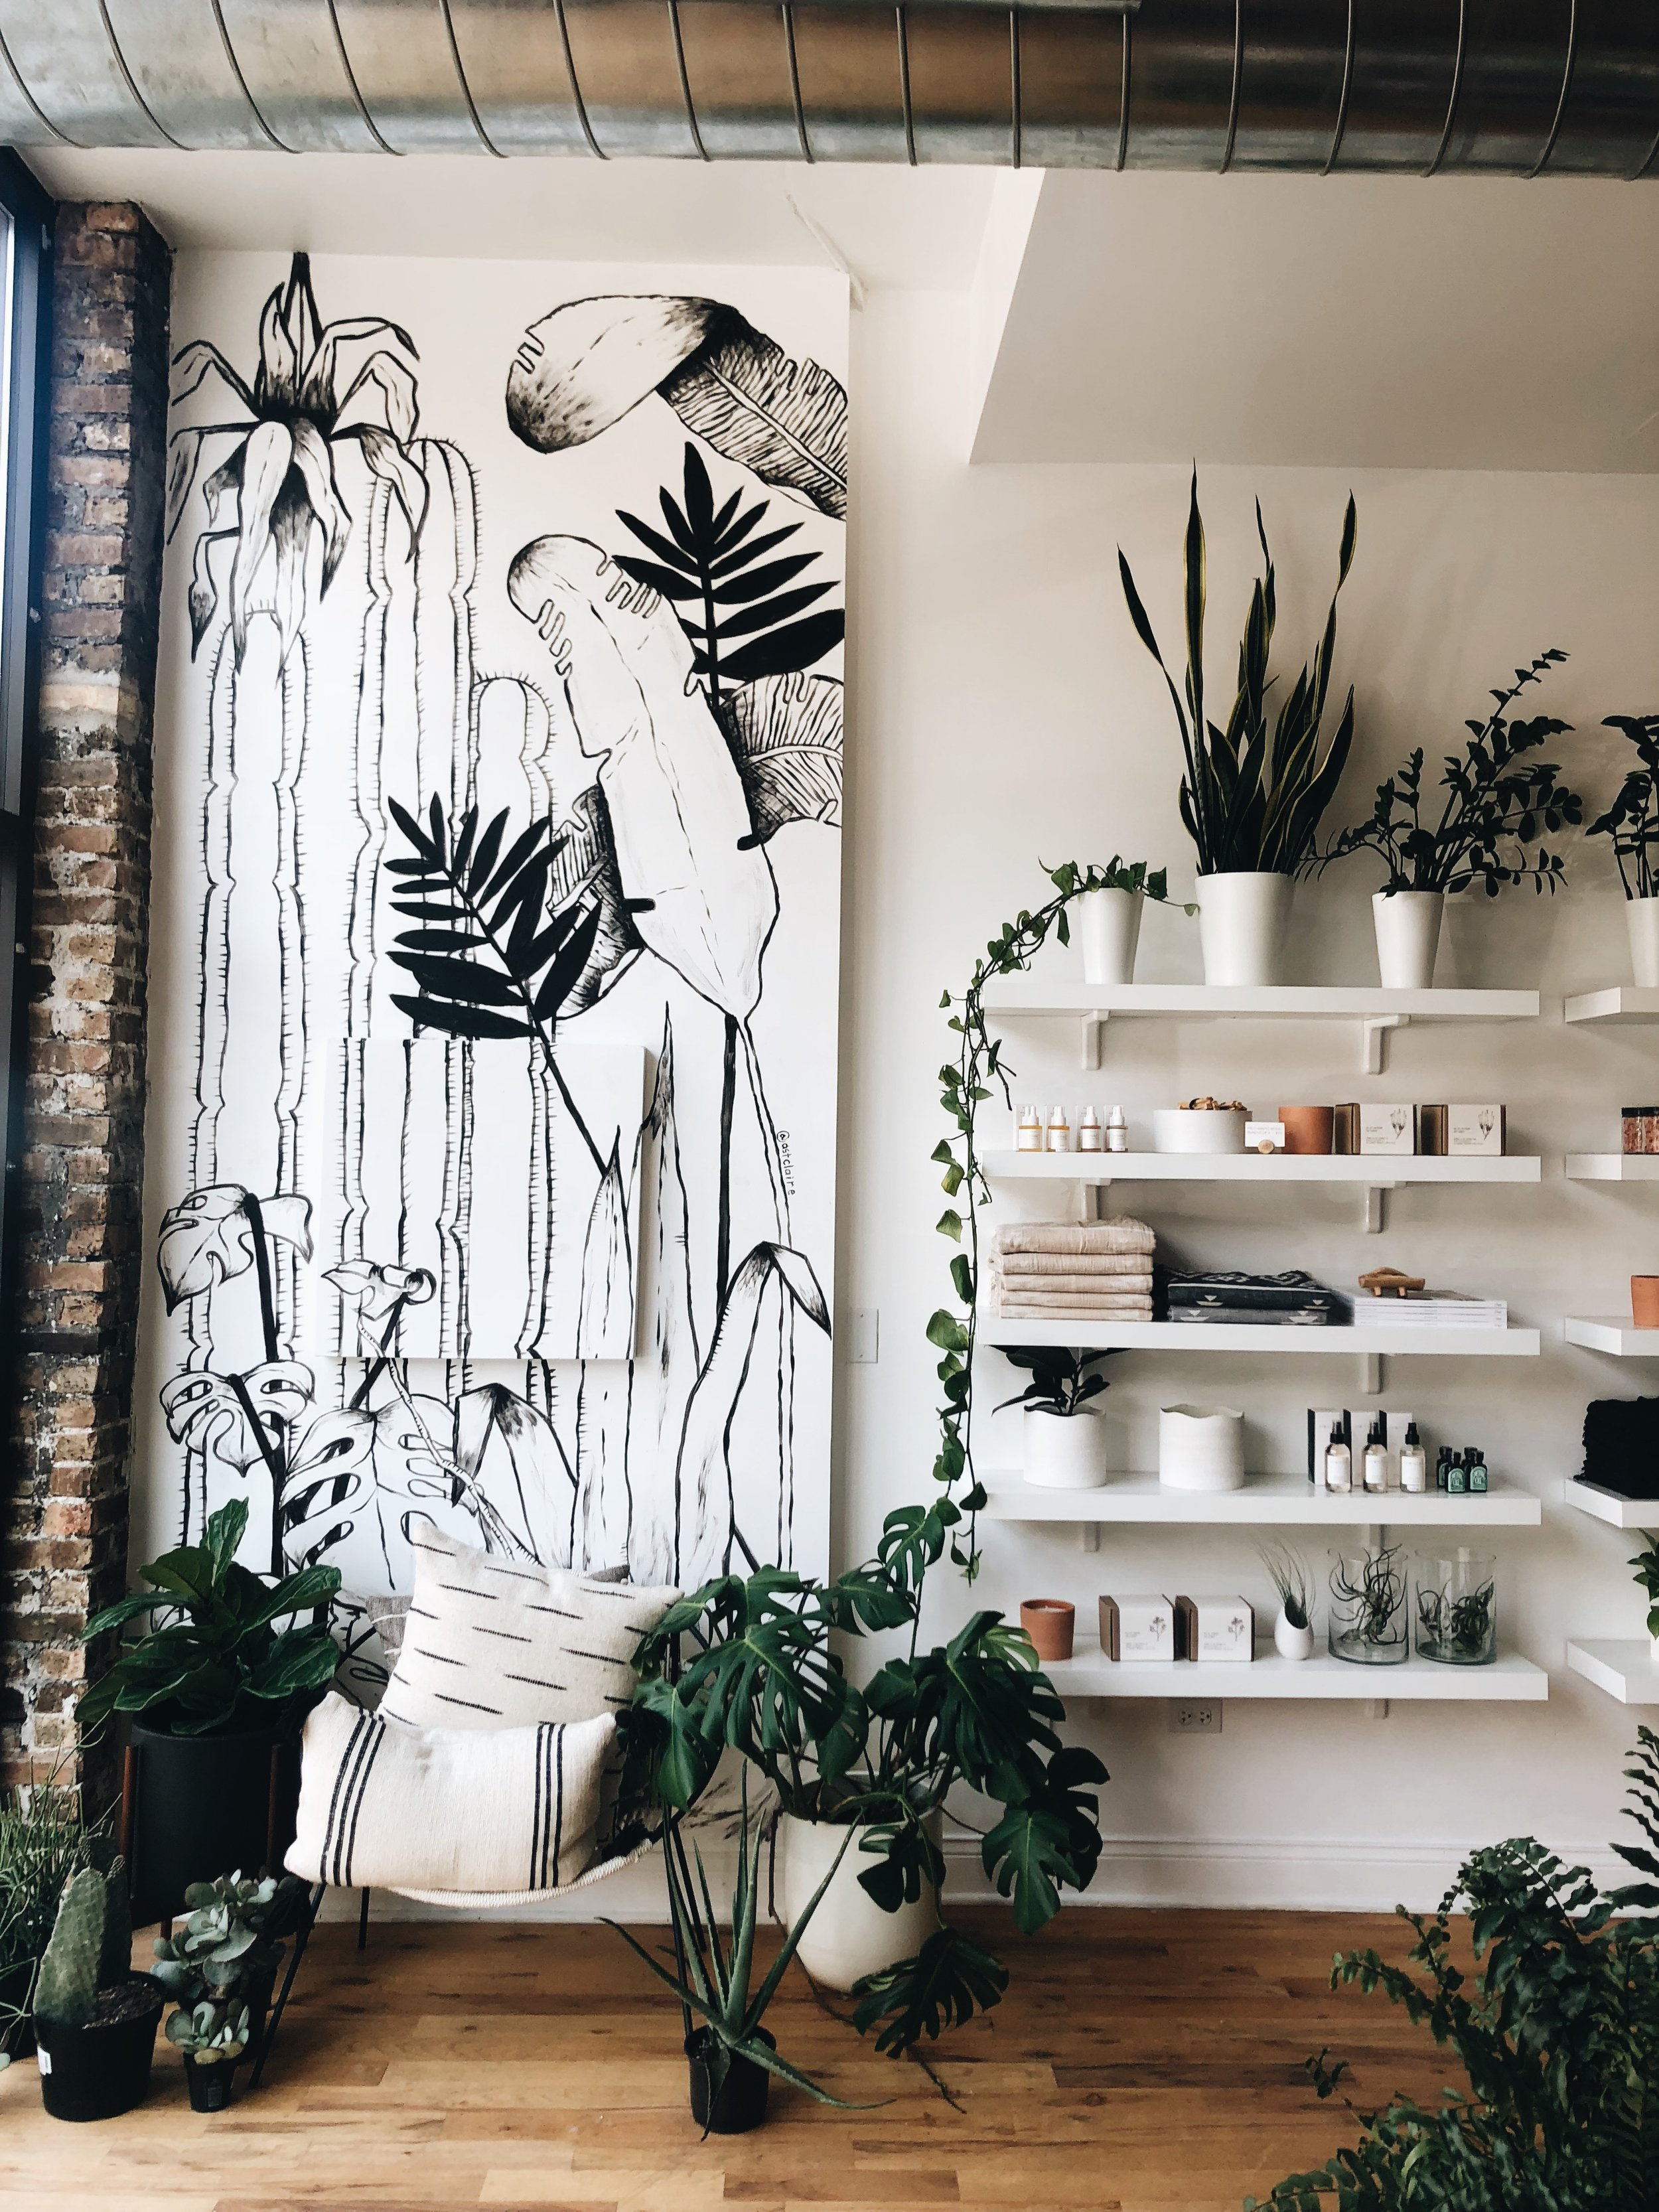 One of my favorite shops, Gather Home & Lifestyle.